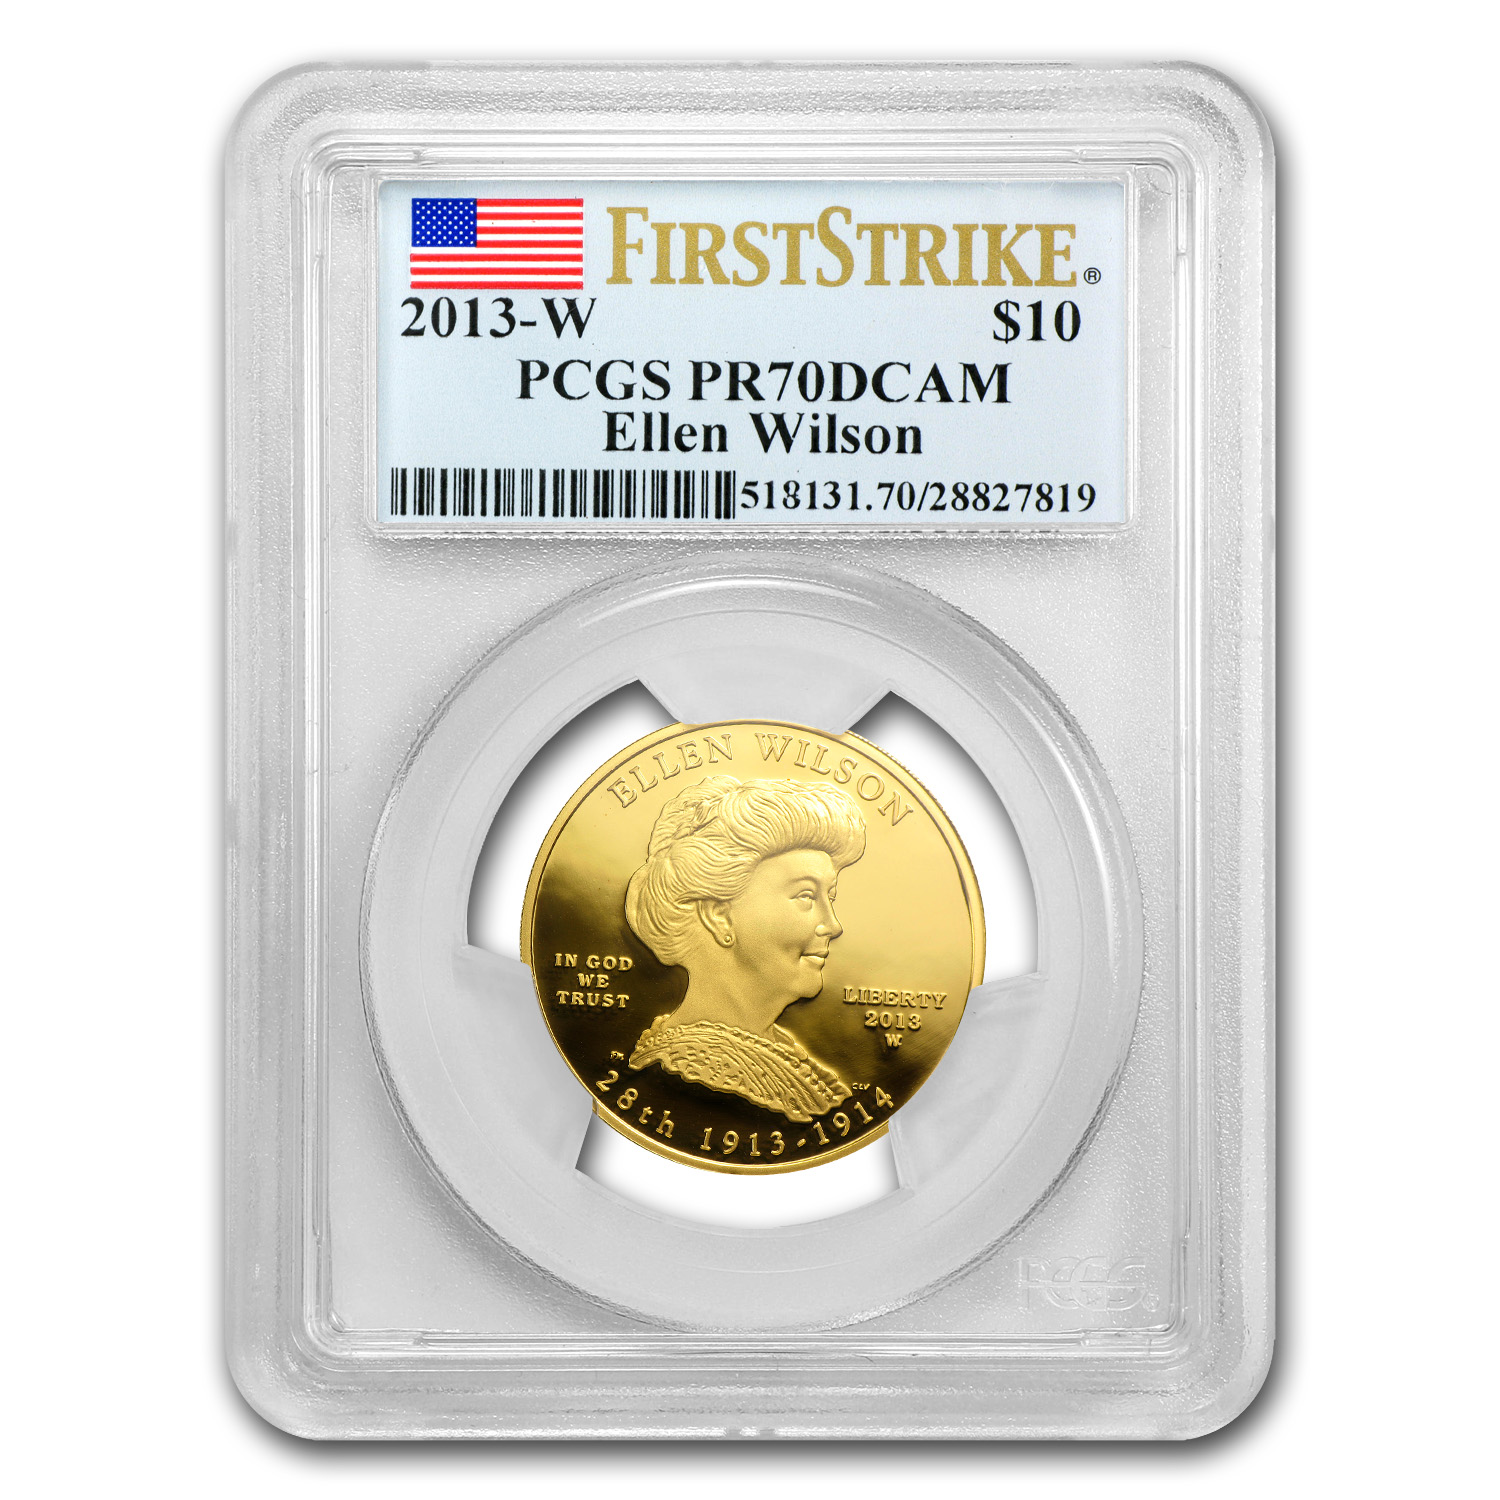 2013-W 1/2 oz Proof Gold Ellen Wilson PR-70 PCGS (FS)